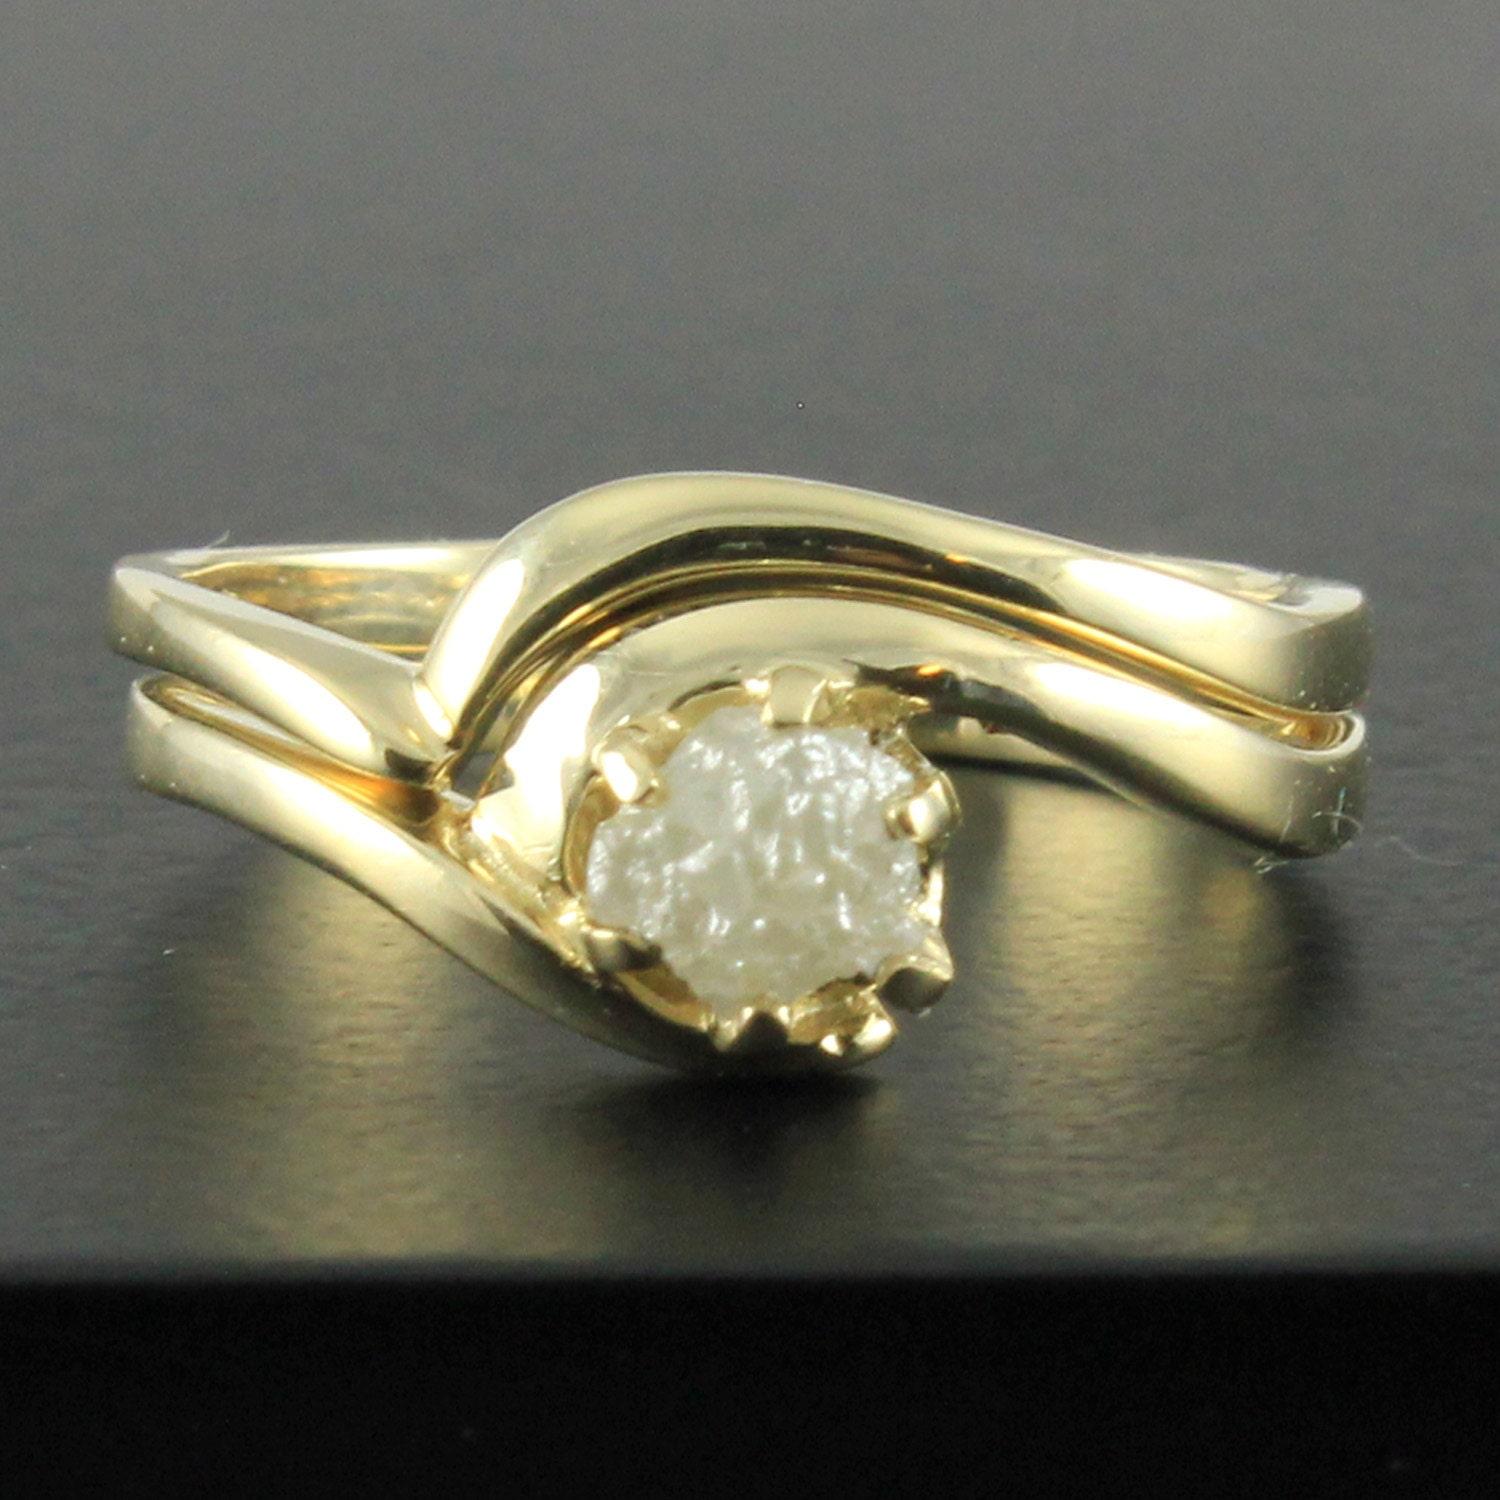 diamonds diamond thumbnail ring rings uncommongoods solitaire uncut rough product